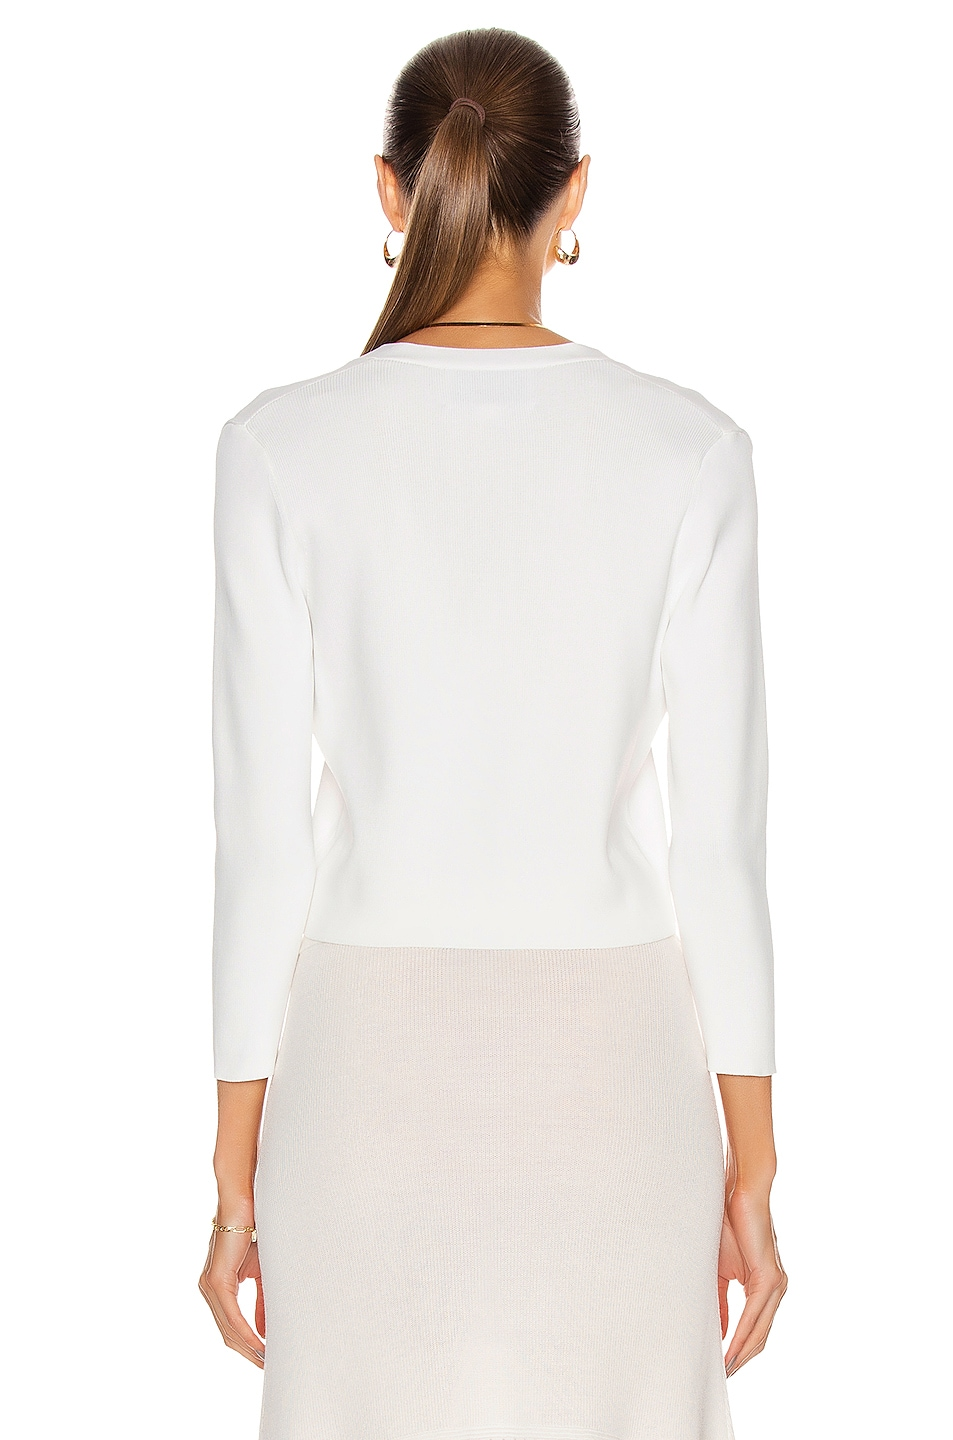 Image 3 of Alexis Petal Top in White